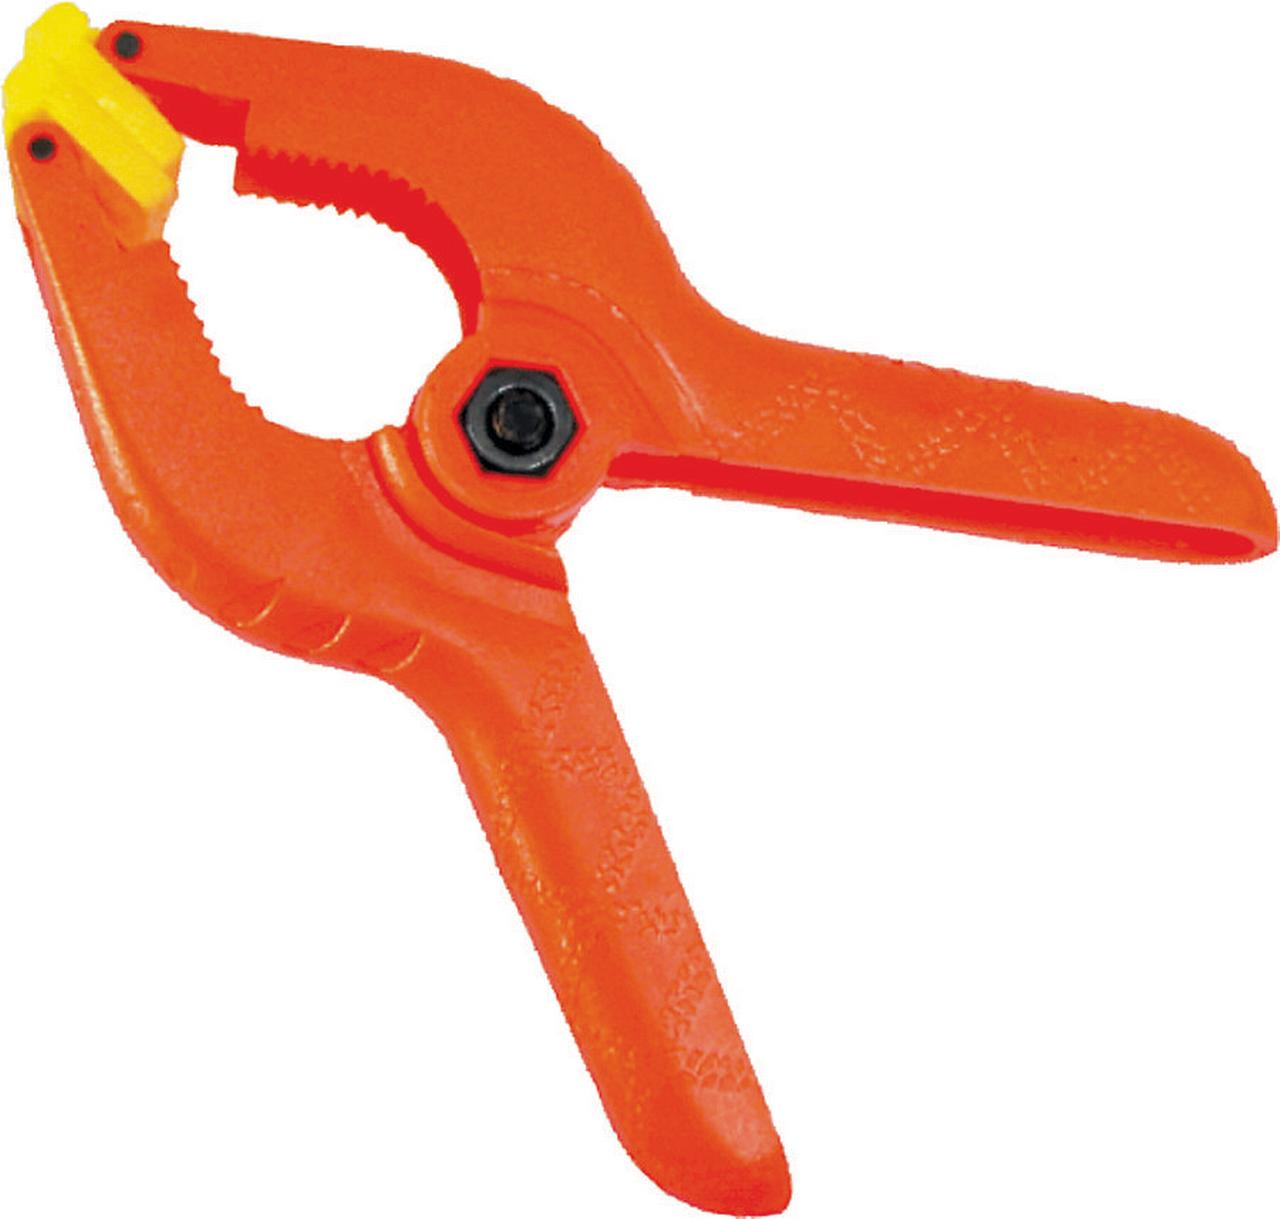 ToolBasix JLWCX007-1 Mini Spring Clamp, 1 in Opening